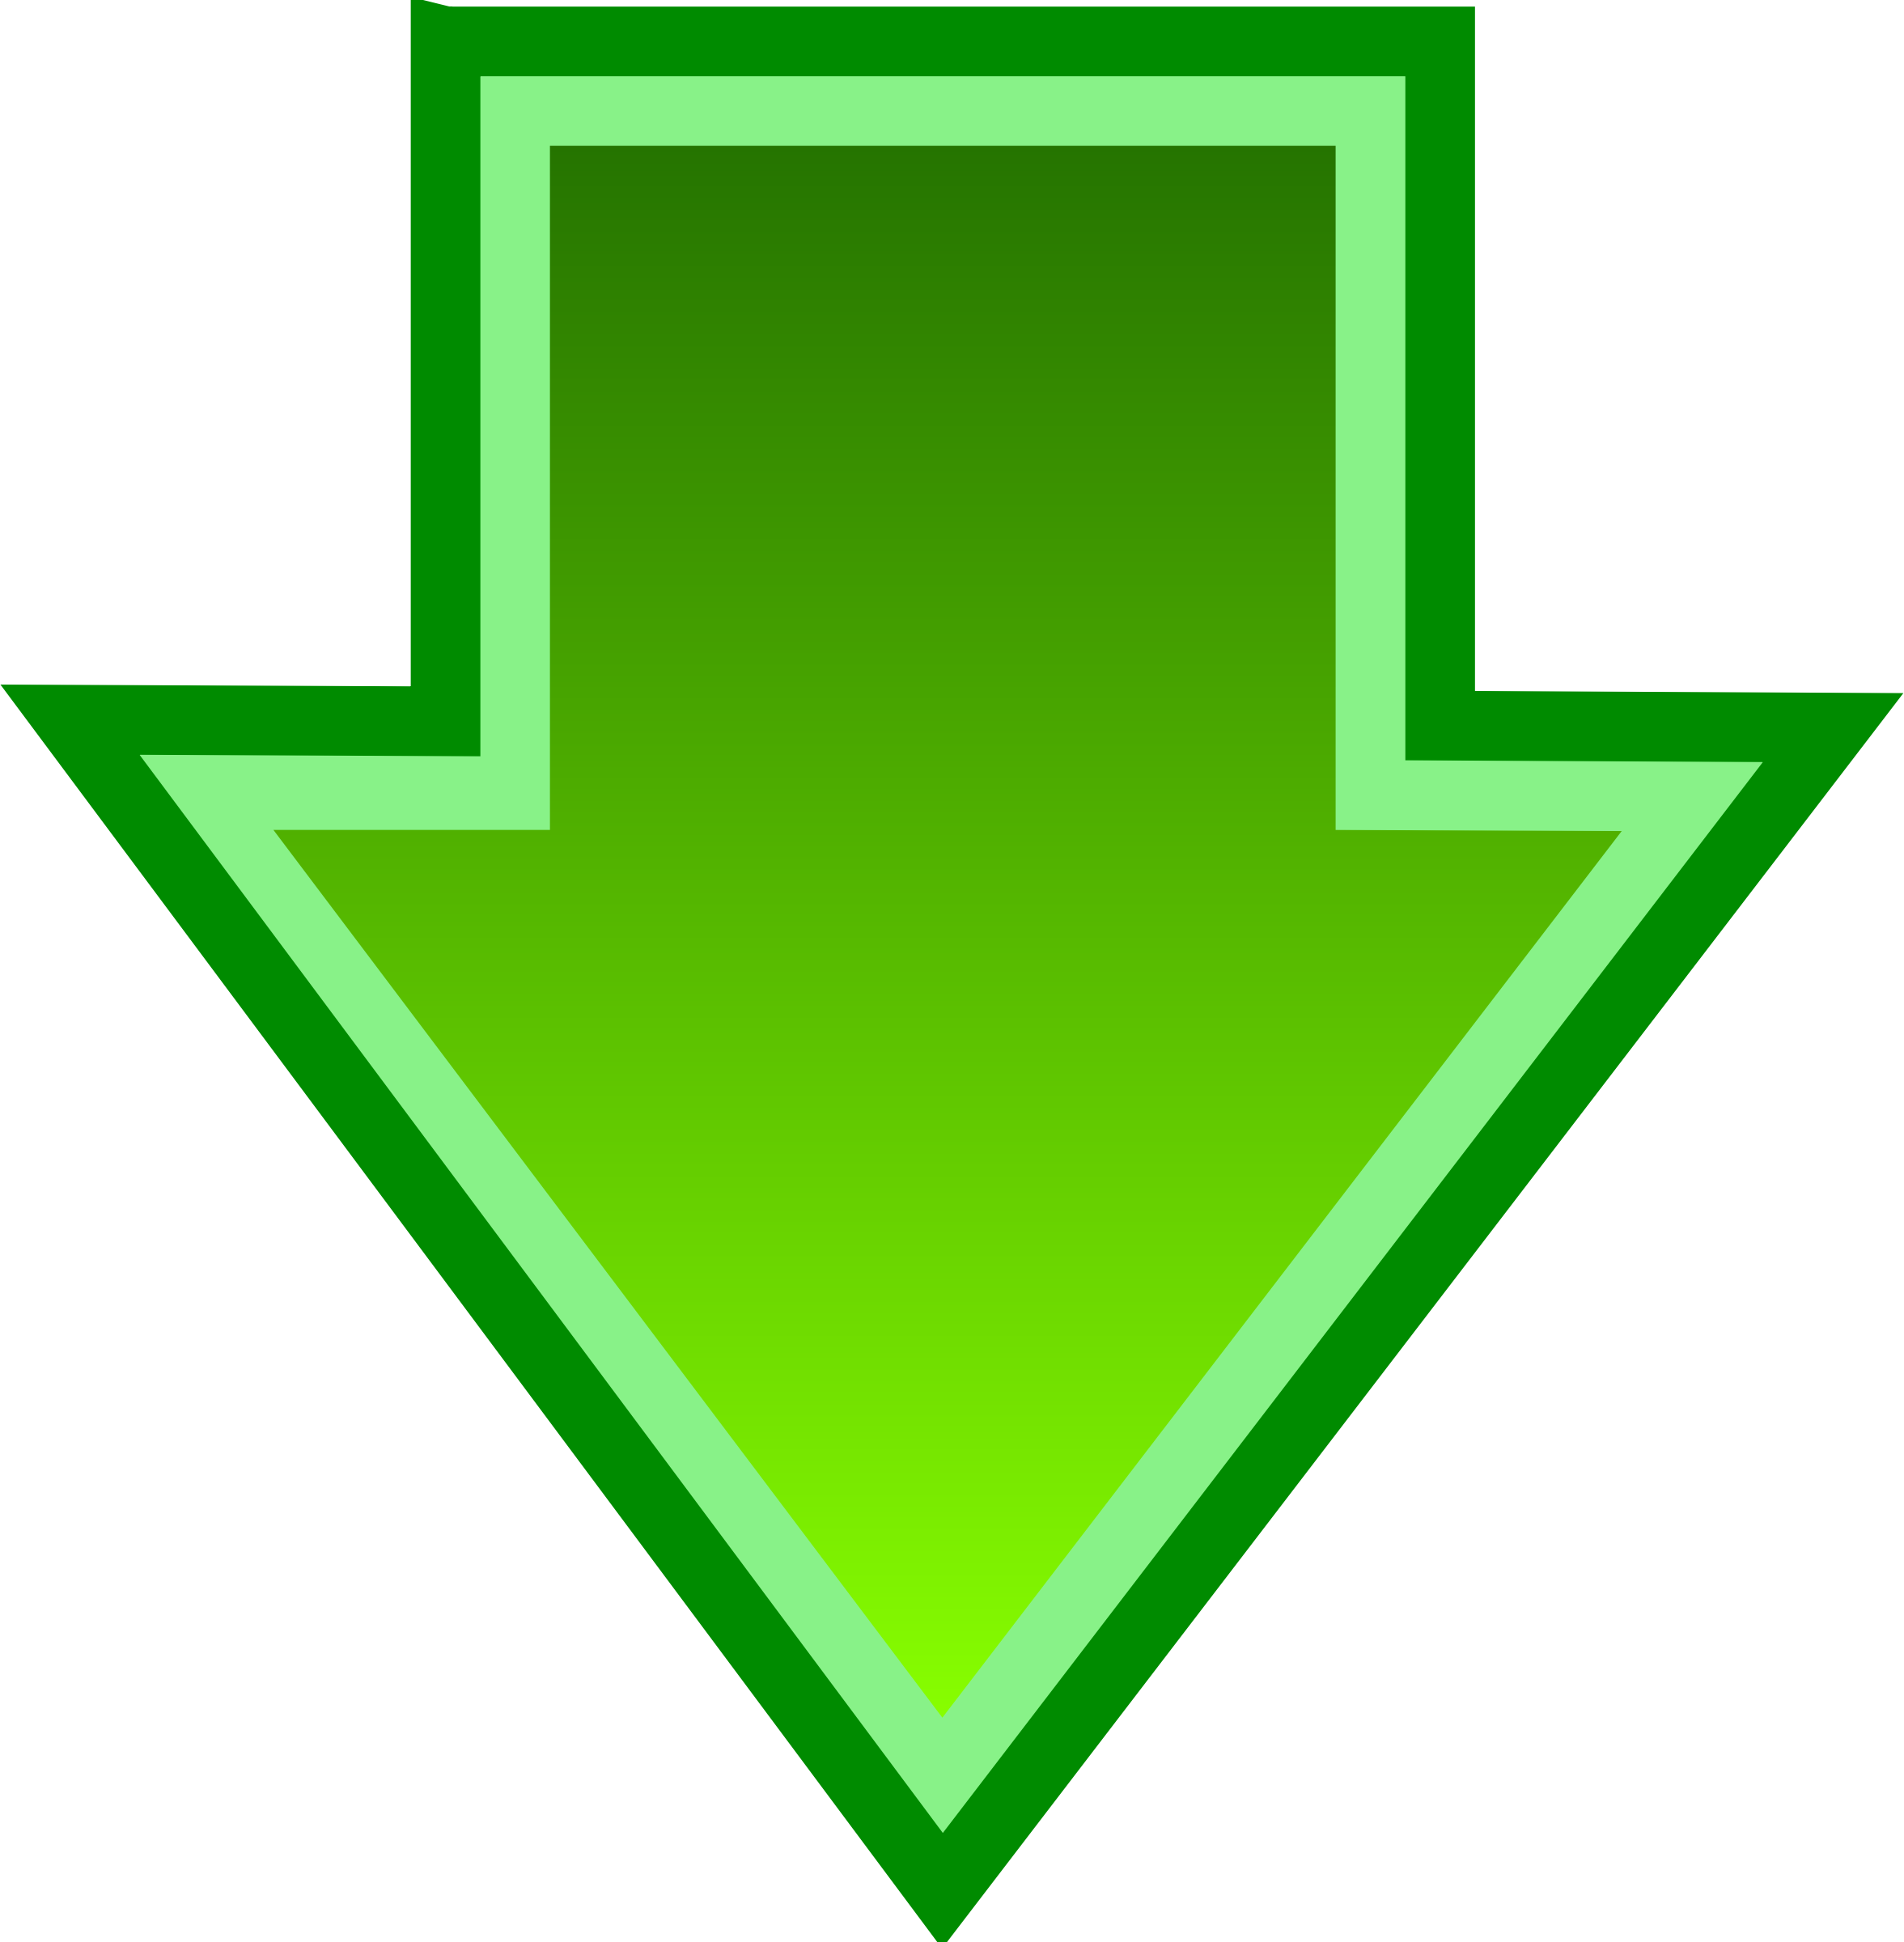 Green down arrow free image download